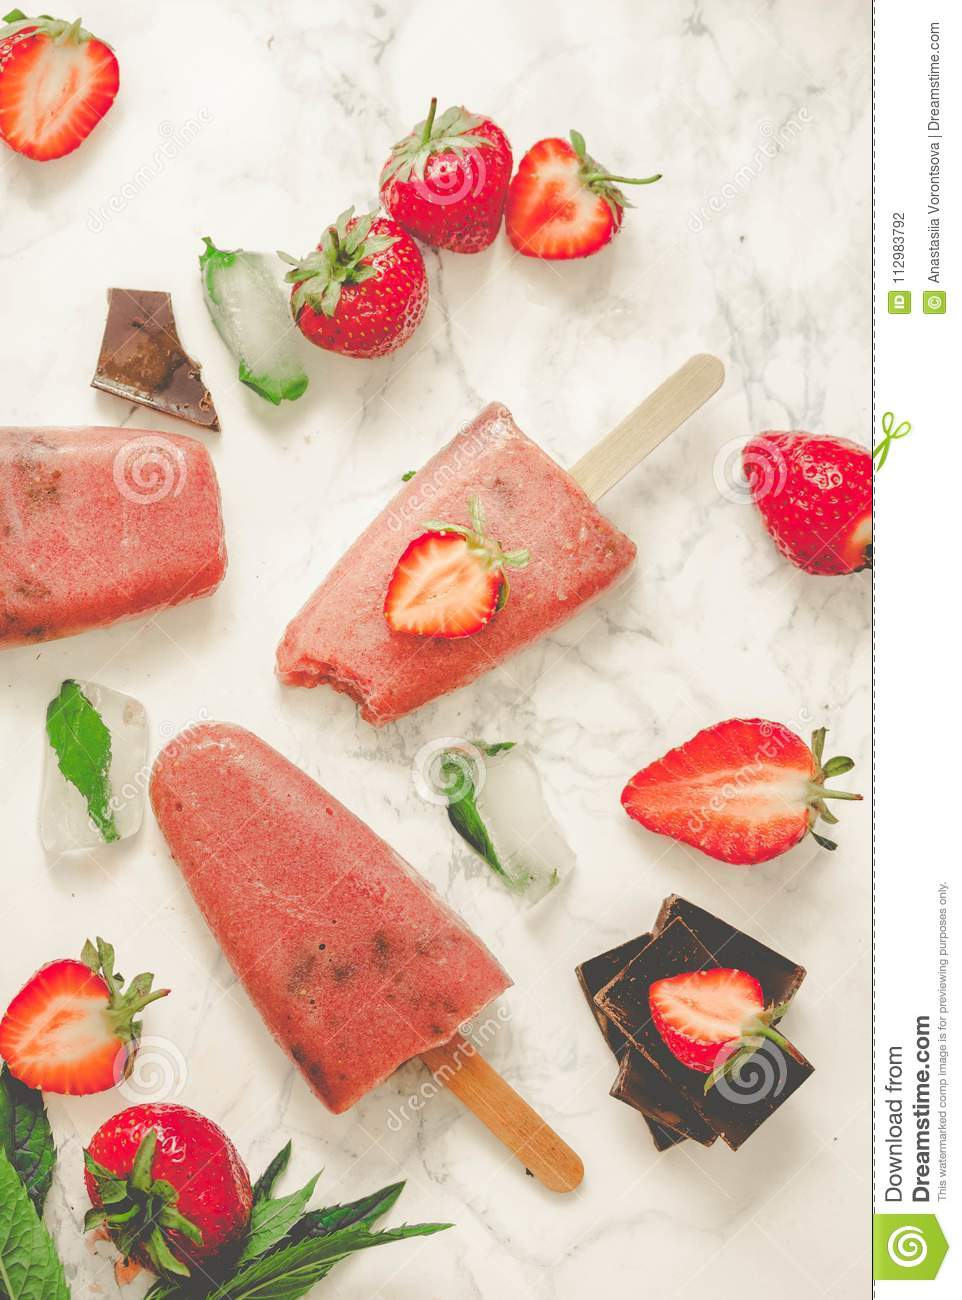 Strawberry ice cream with a banana and chocolate on a stick. Ton